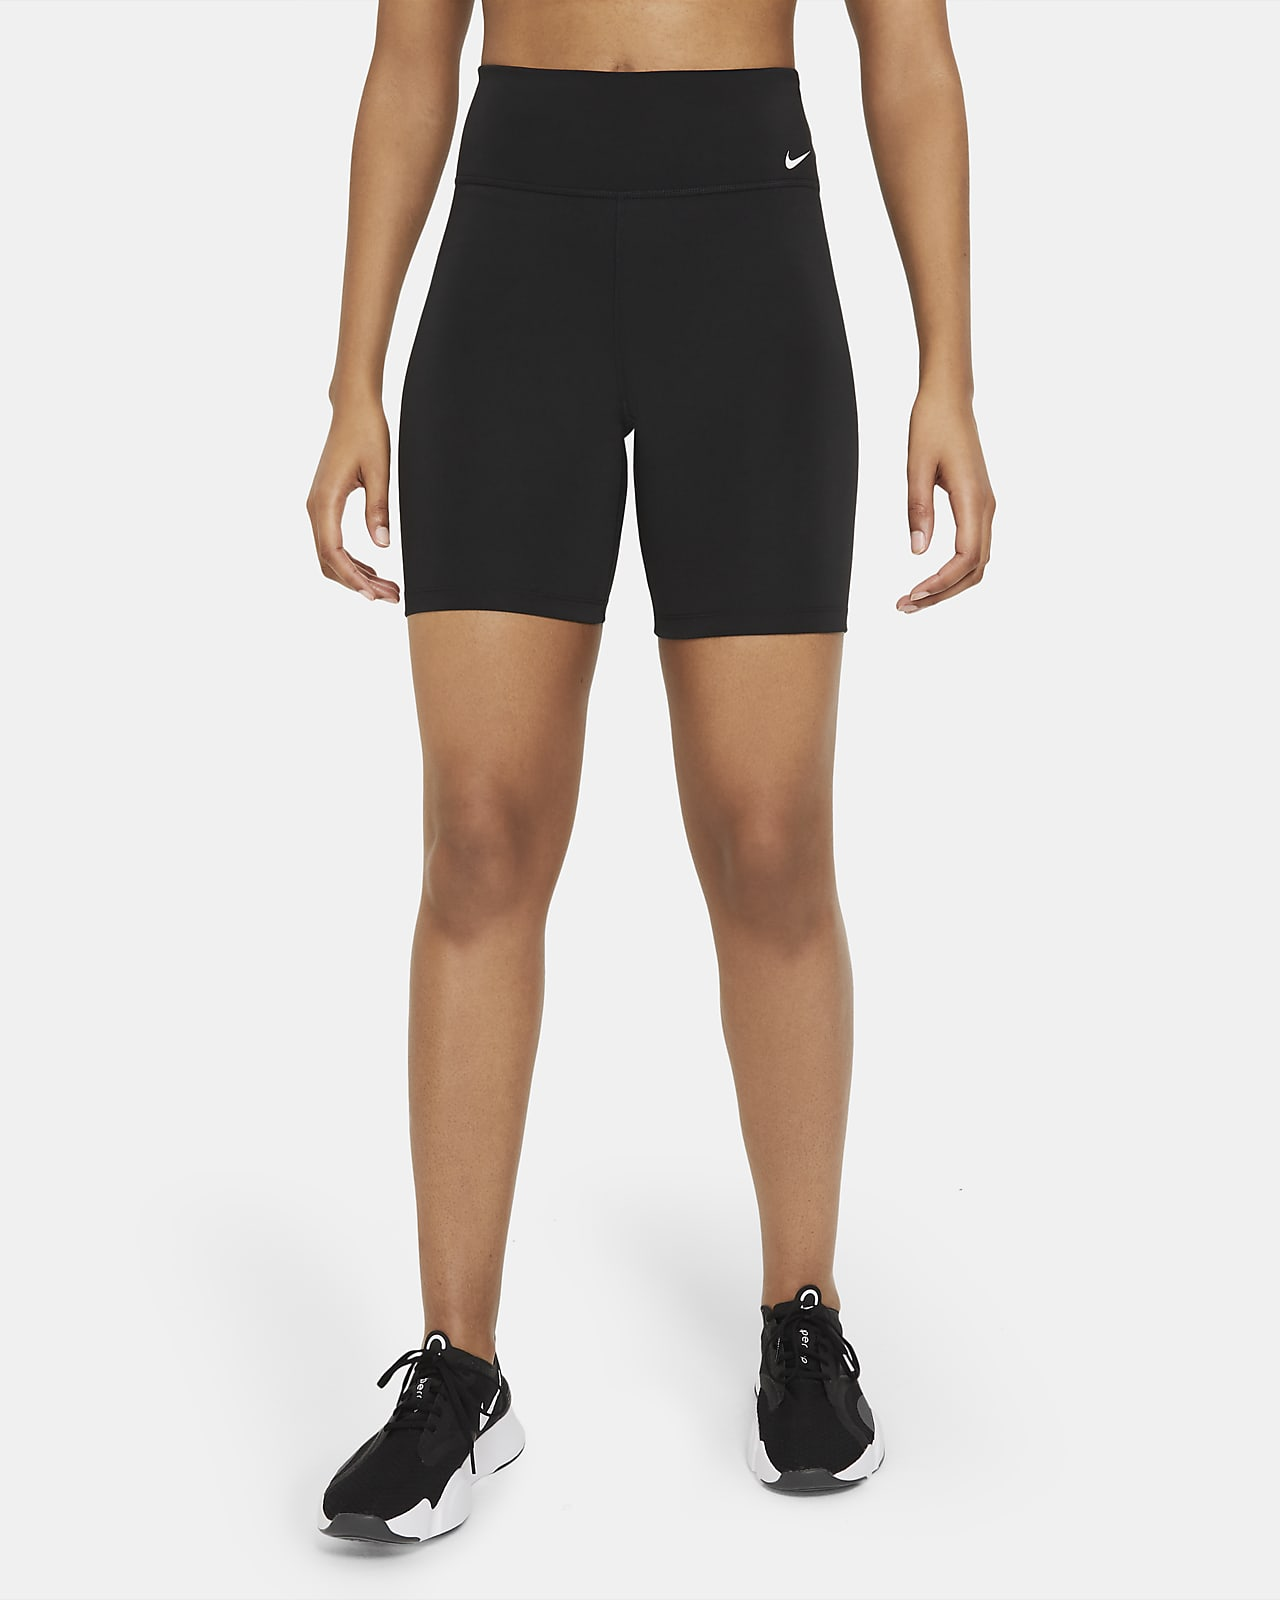 Nike One Damesshorts met halfhoge taille (18 cm)